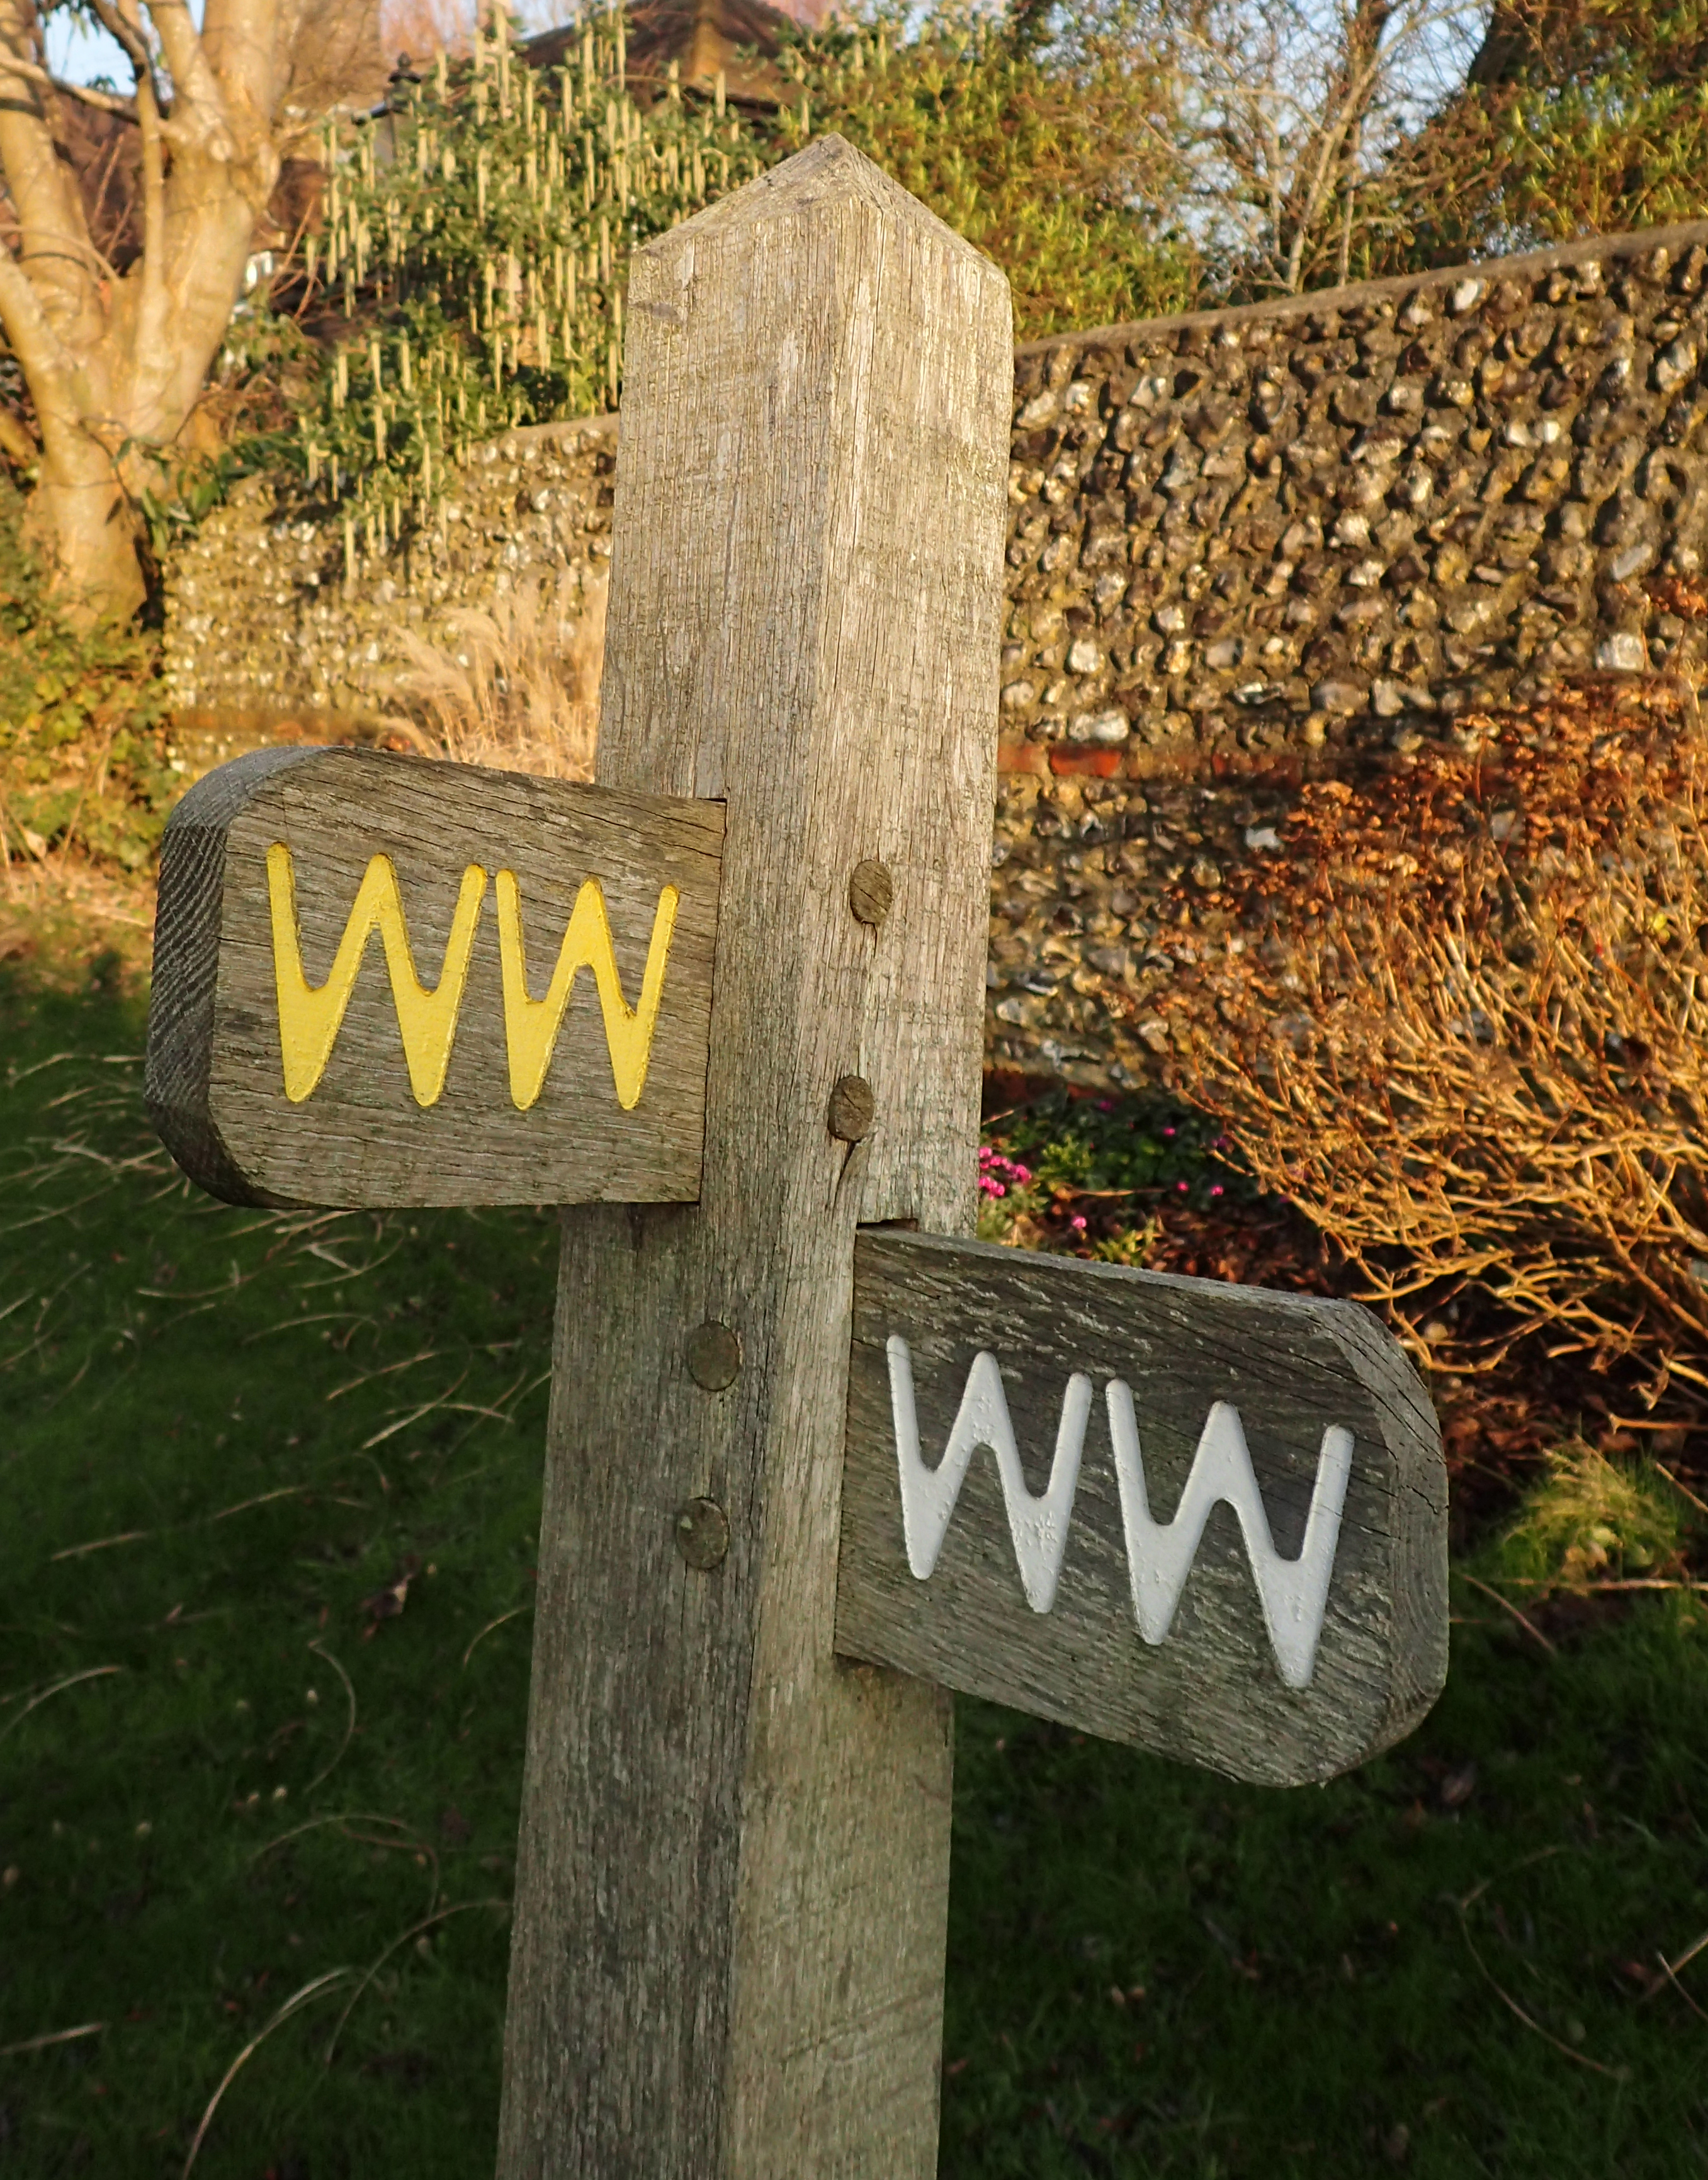 Some 99% of the Wealdway has excellent signposting